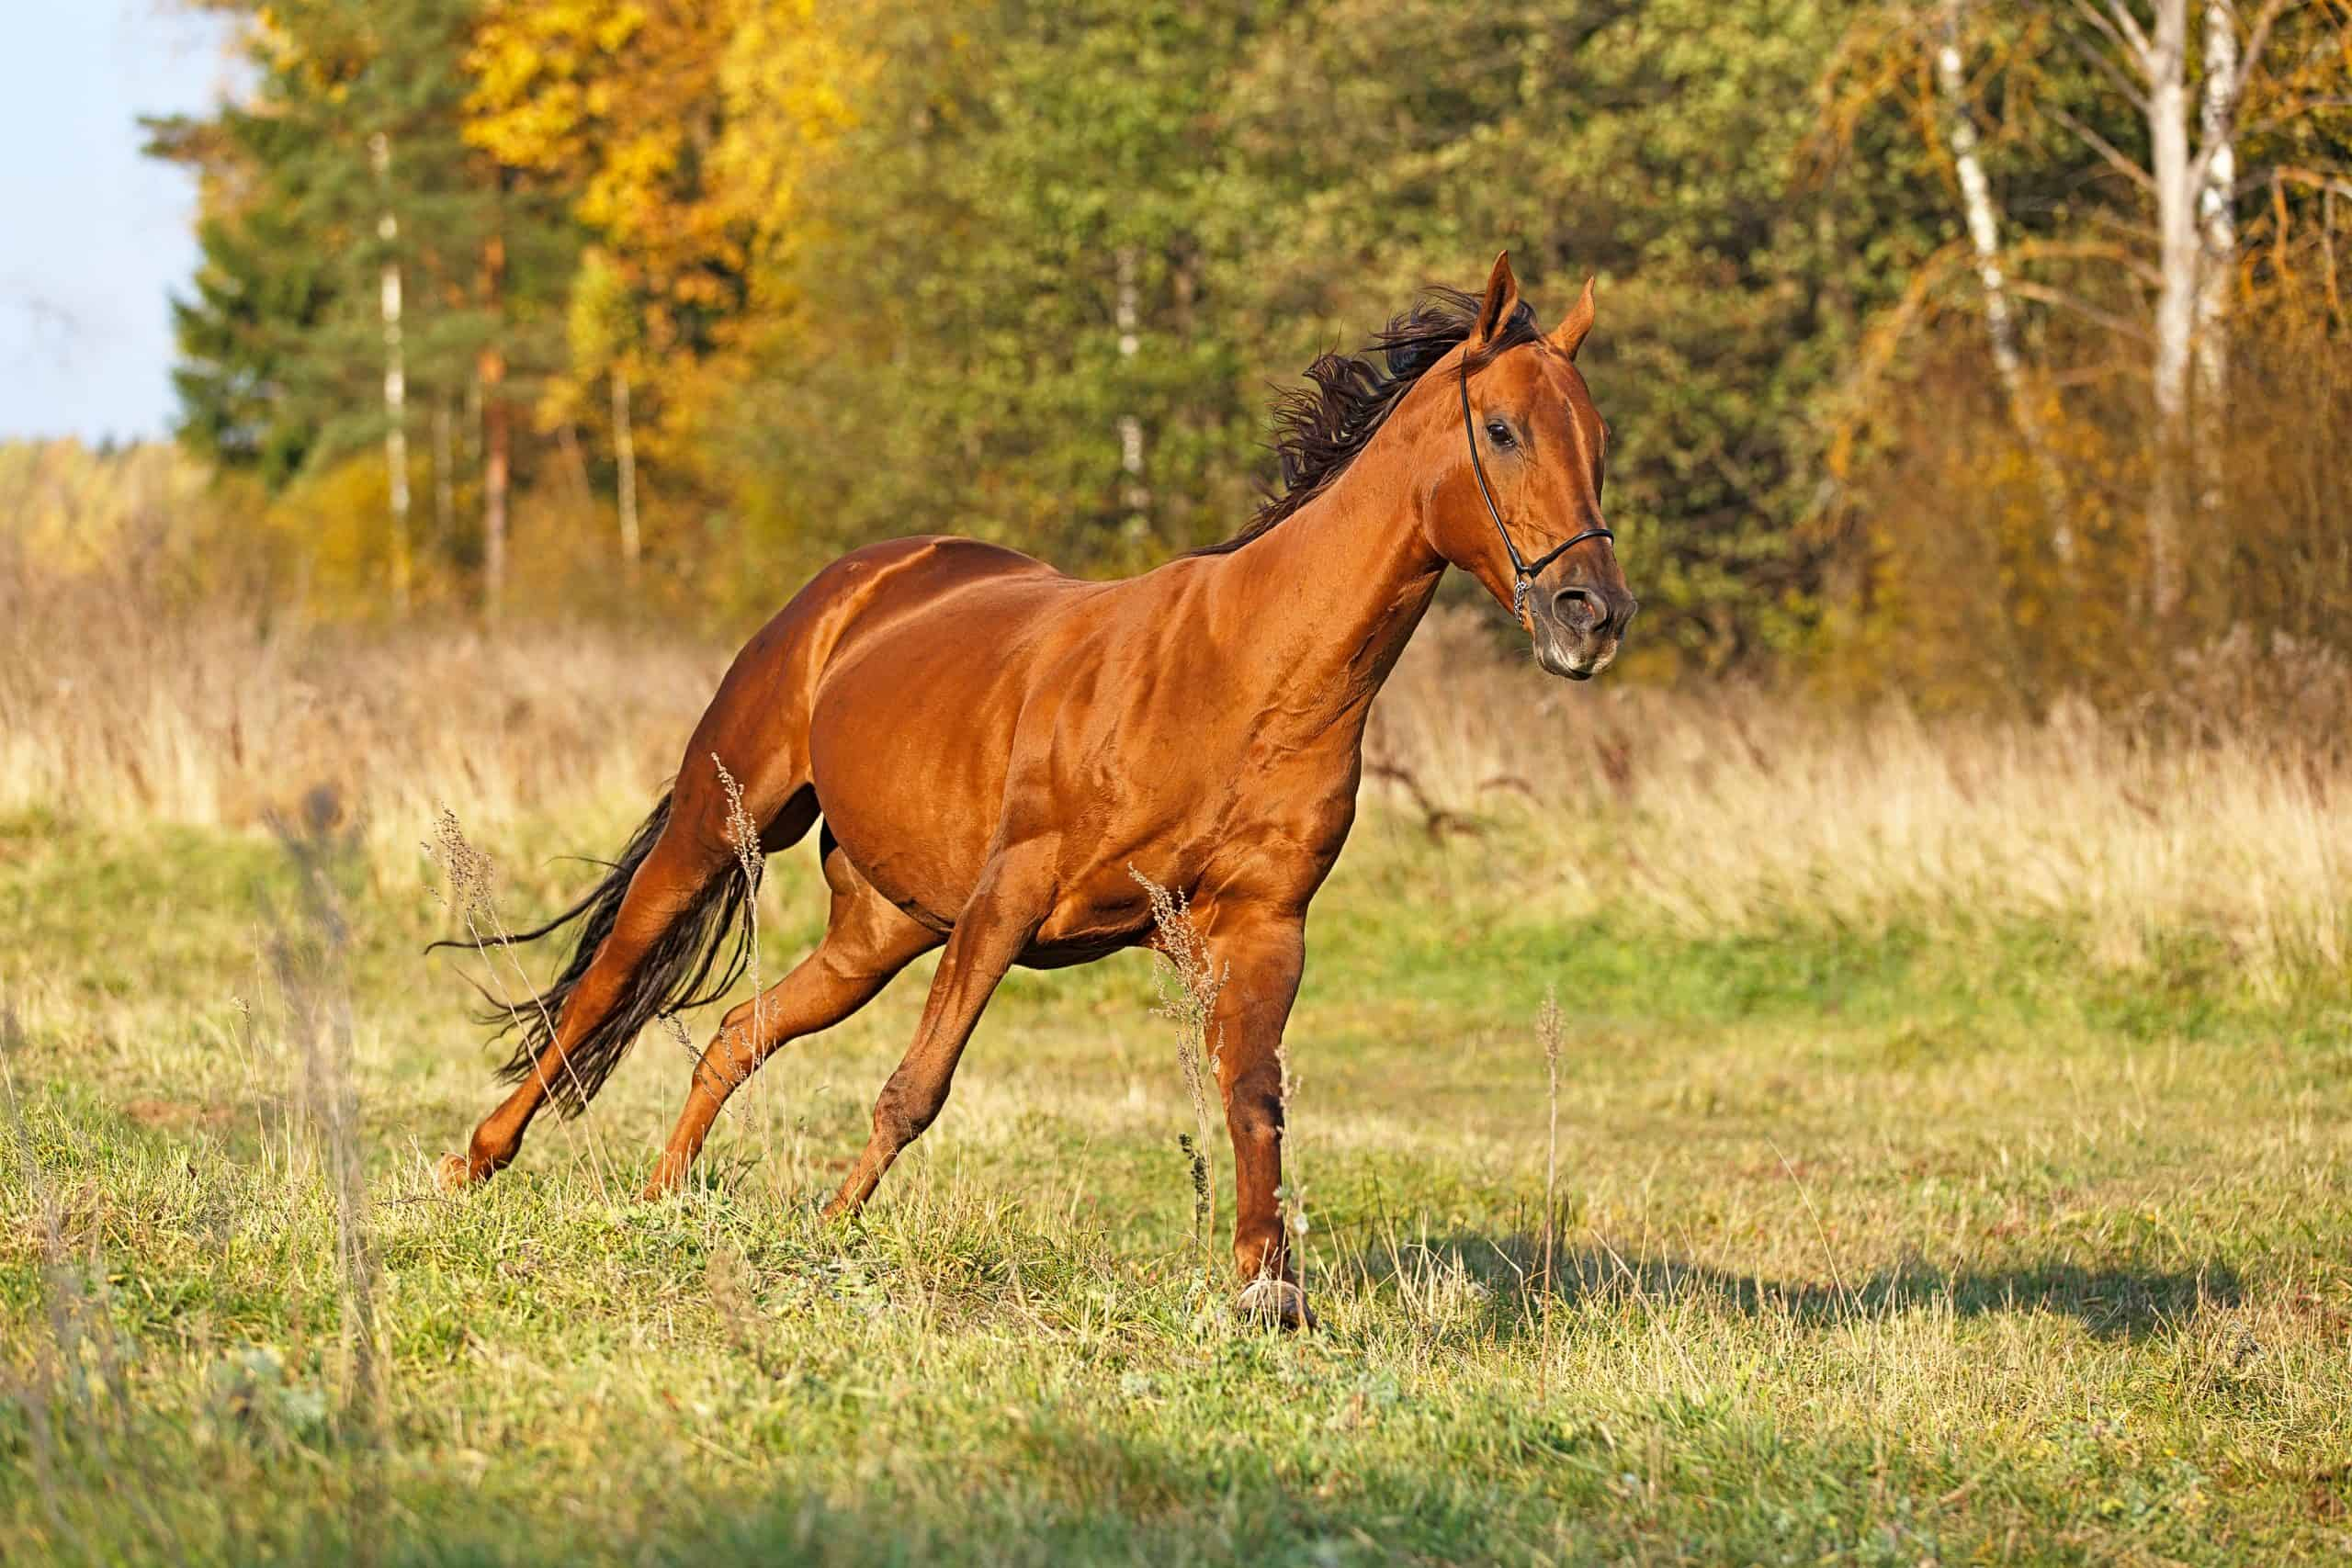 Horse cantering in the field